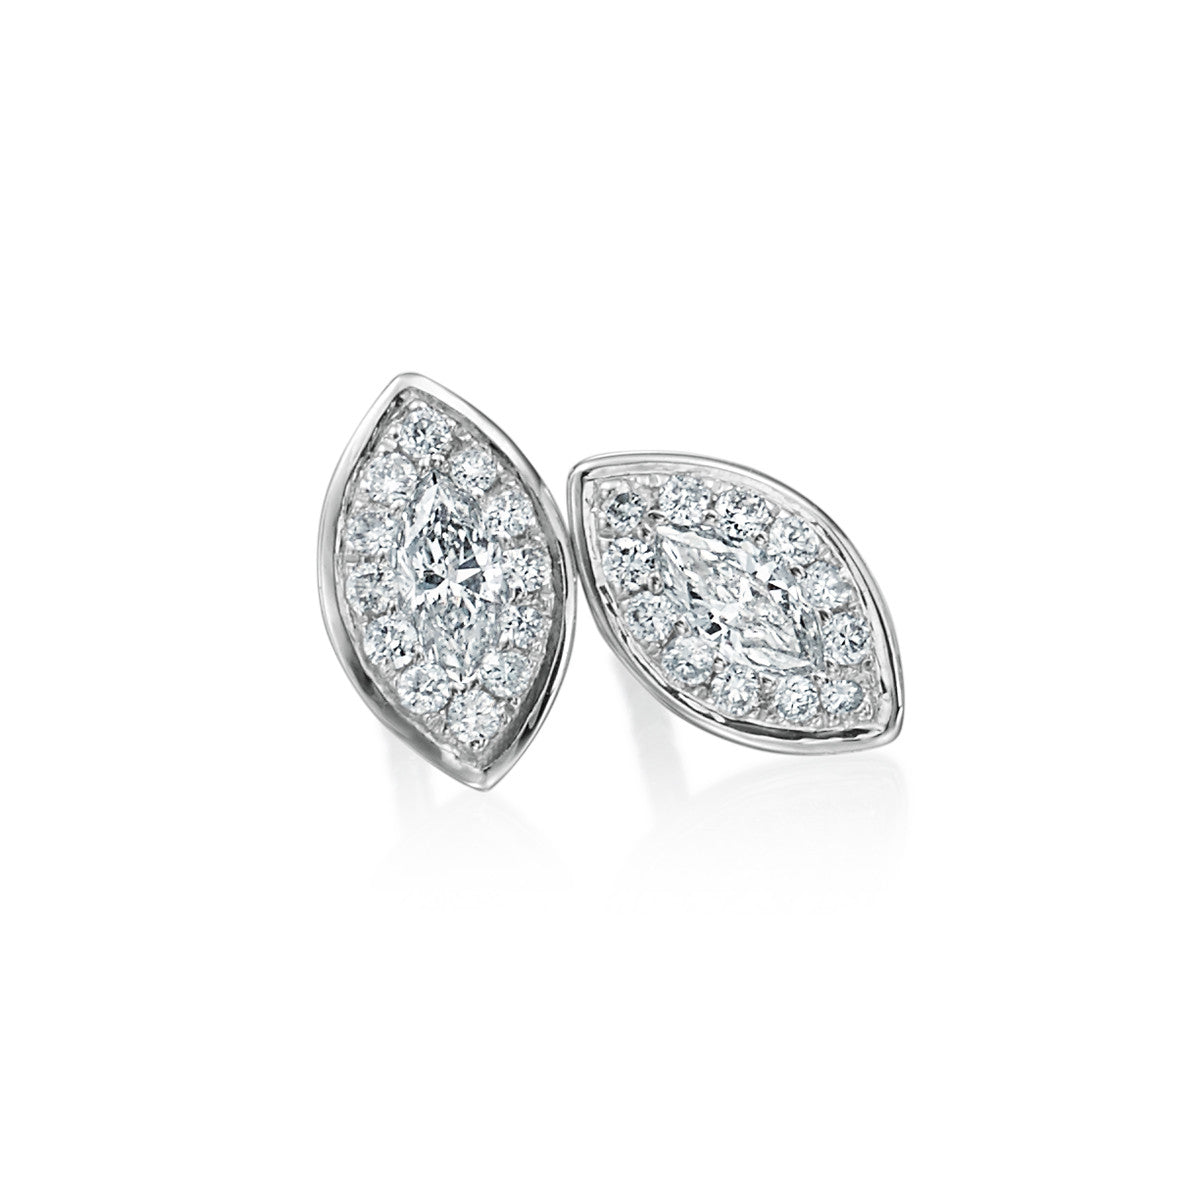 18K White Gold Marquise Cut Diamond Halo Stud Earrings